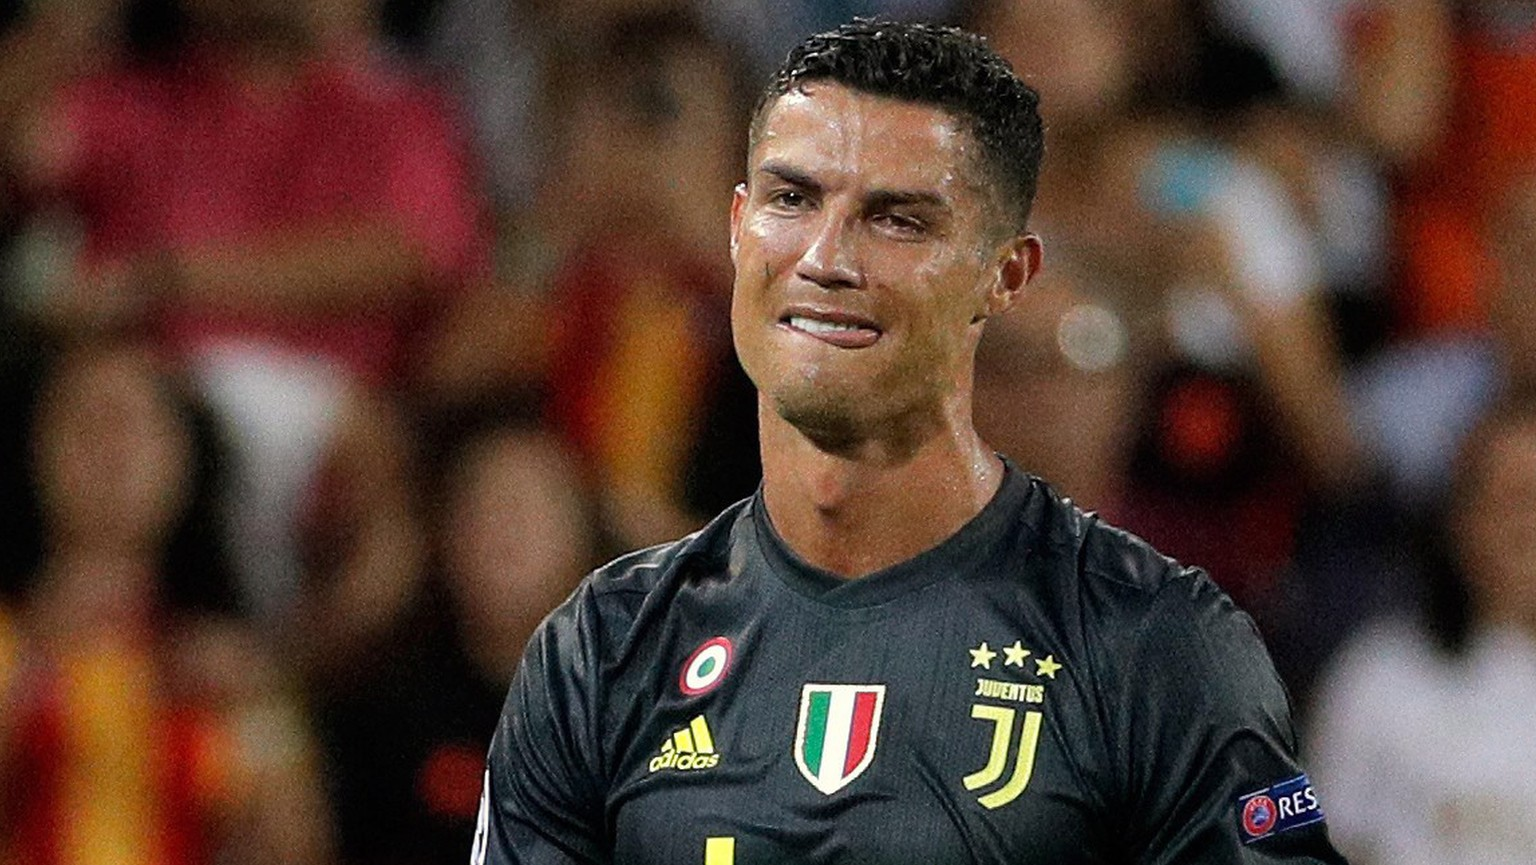 epa07033104 Juventus' forward Cristiano Ronaldo reacts after being sent off during the UEFA Champions League soccer match between Valencia CF and Juventus FC at Mestalla stadium in Valencia, Spain, 19 September 2018.  EPA/JUAN CARLOS CARDENAS